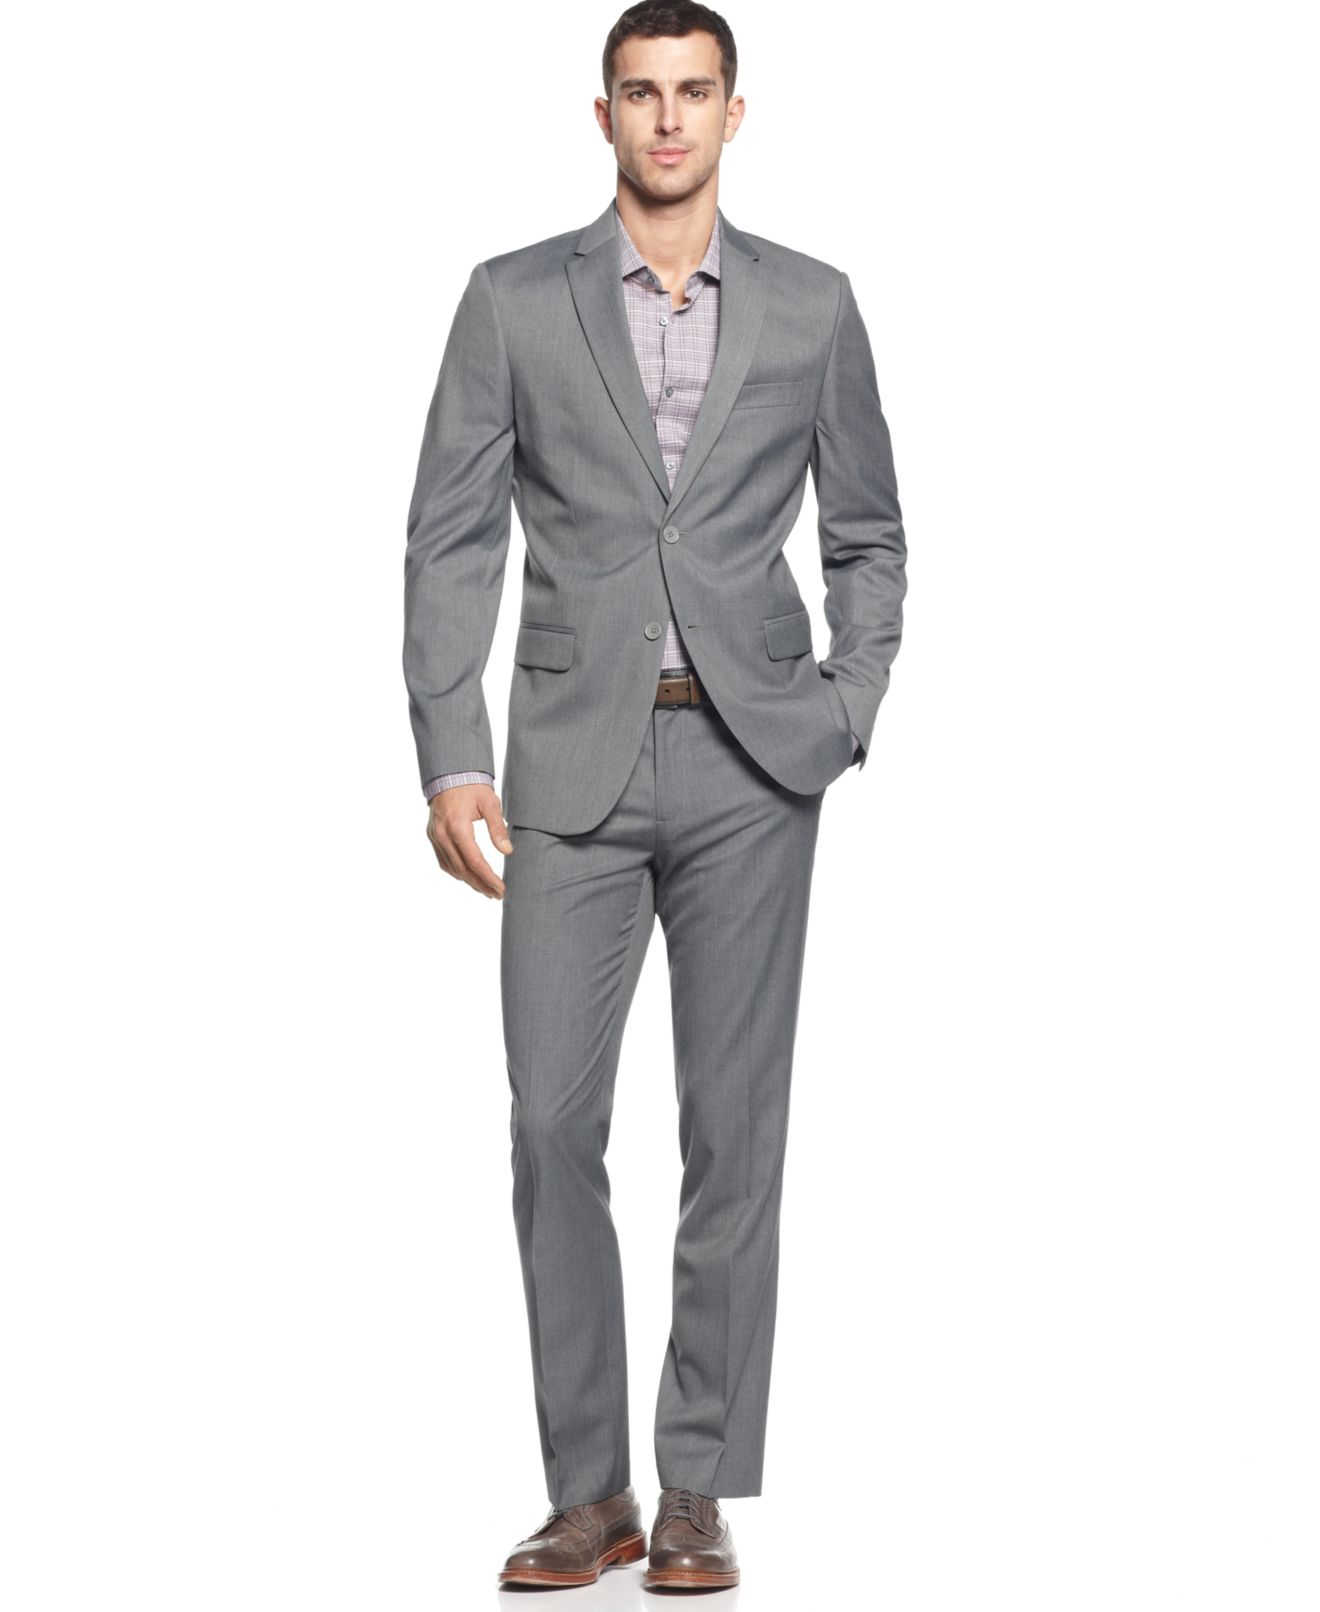 Calvin Klein Men's Blazer and Pants Suit Separates - Suits & Suit ...